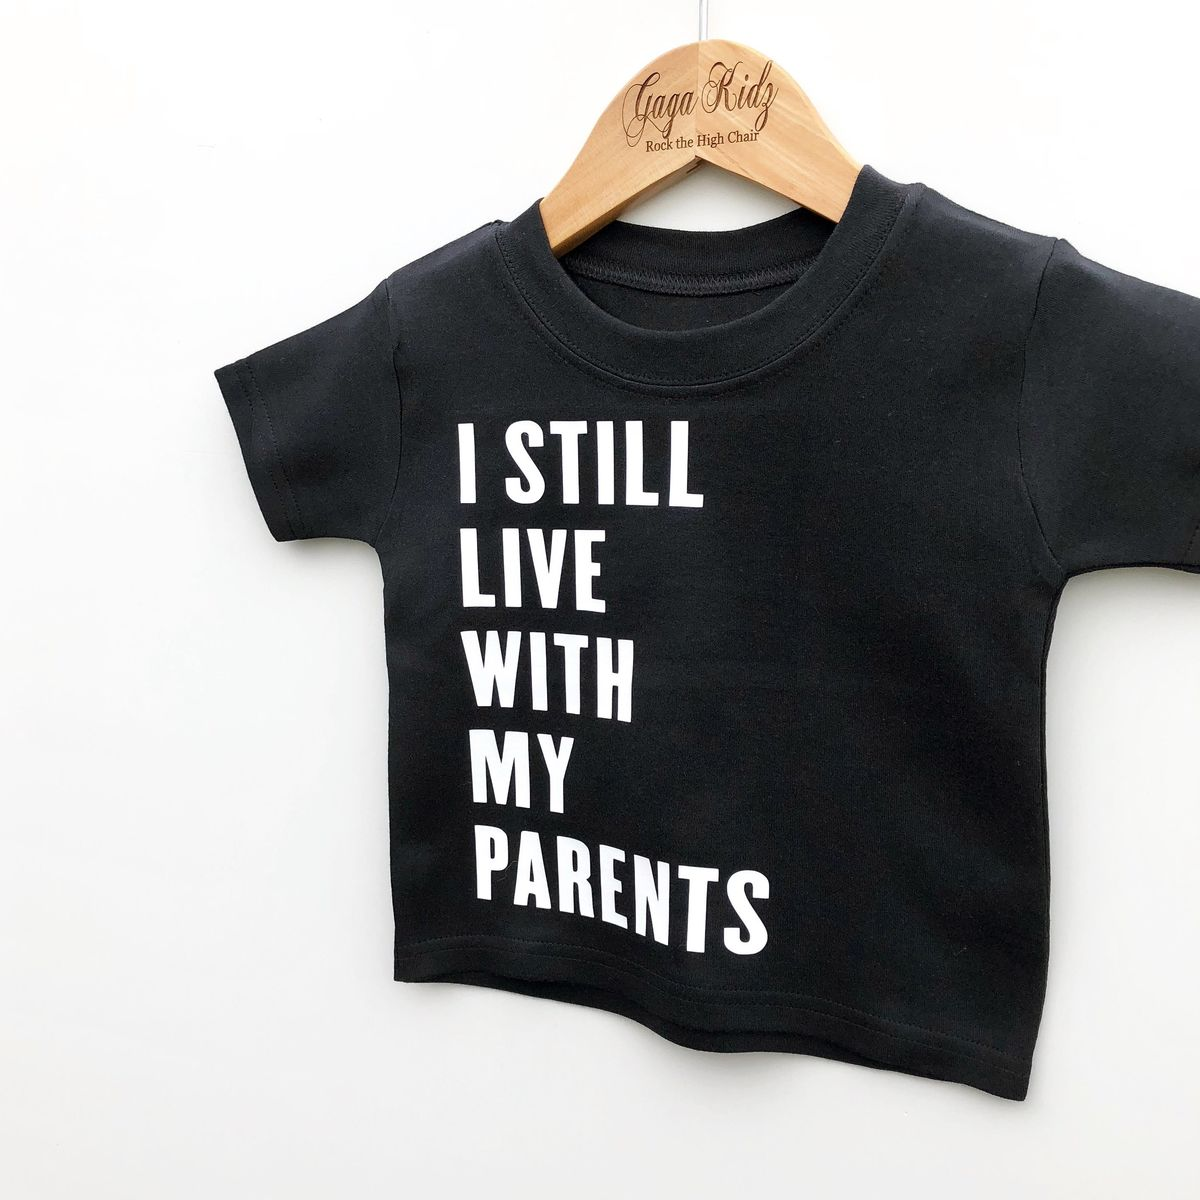 I Still Live at Home Black & White Kids T-Shirt (various sizes) - product images  of